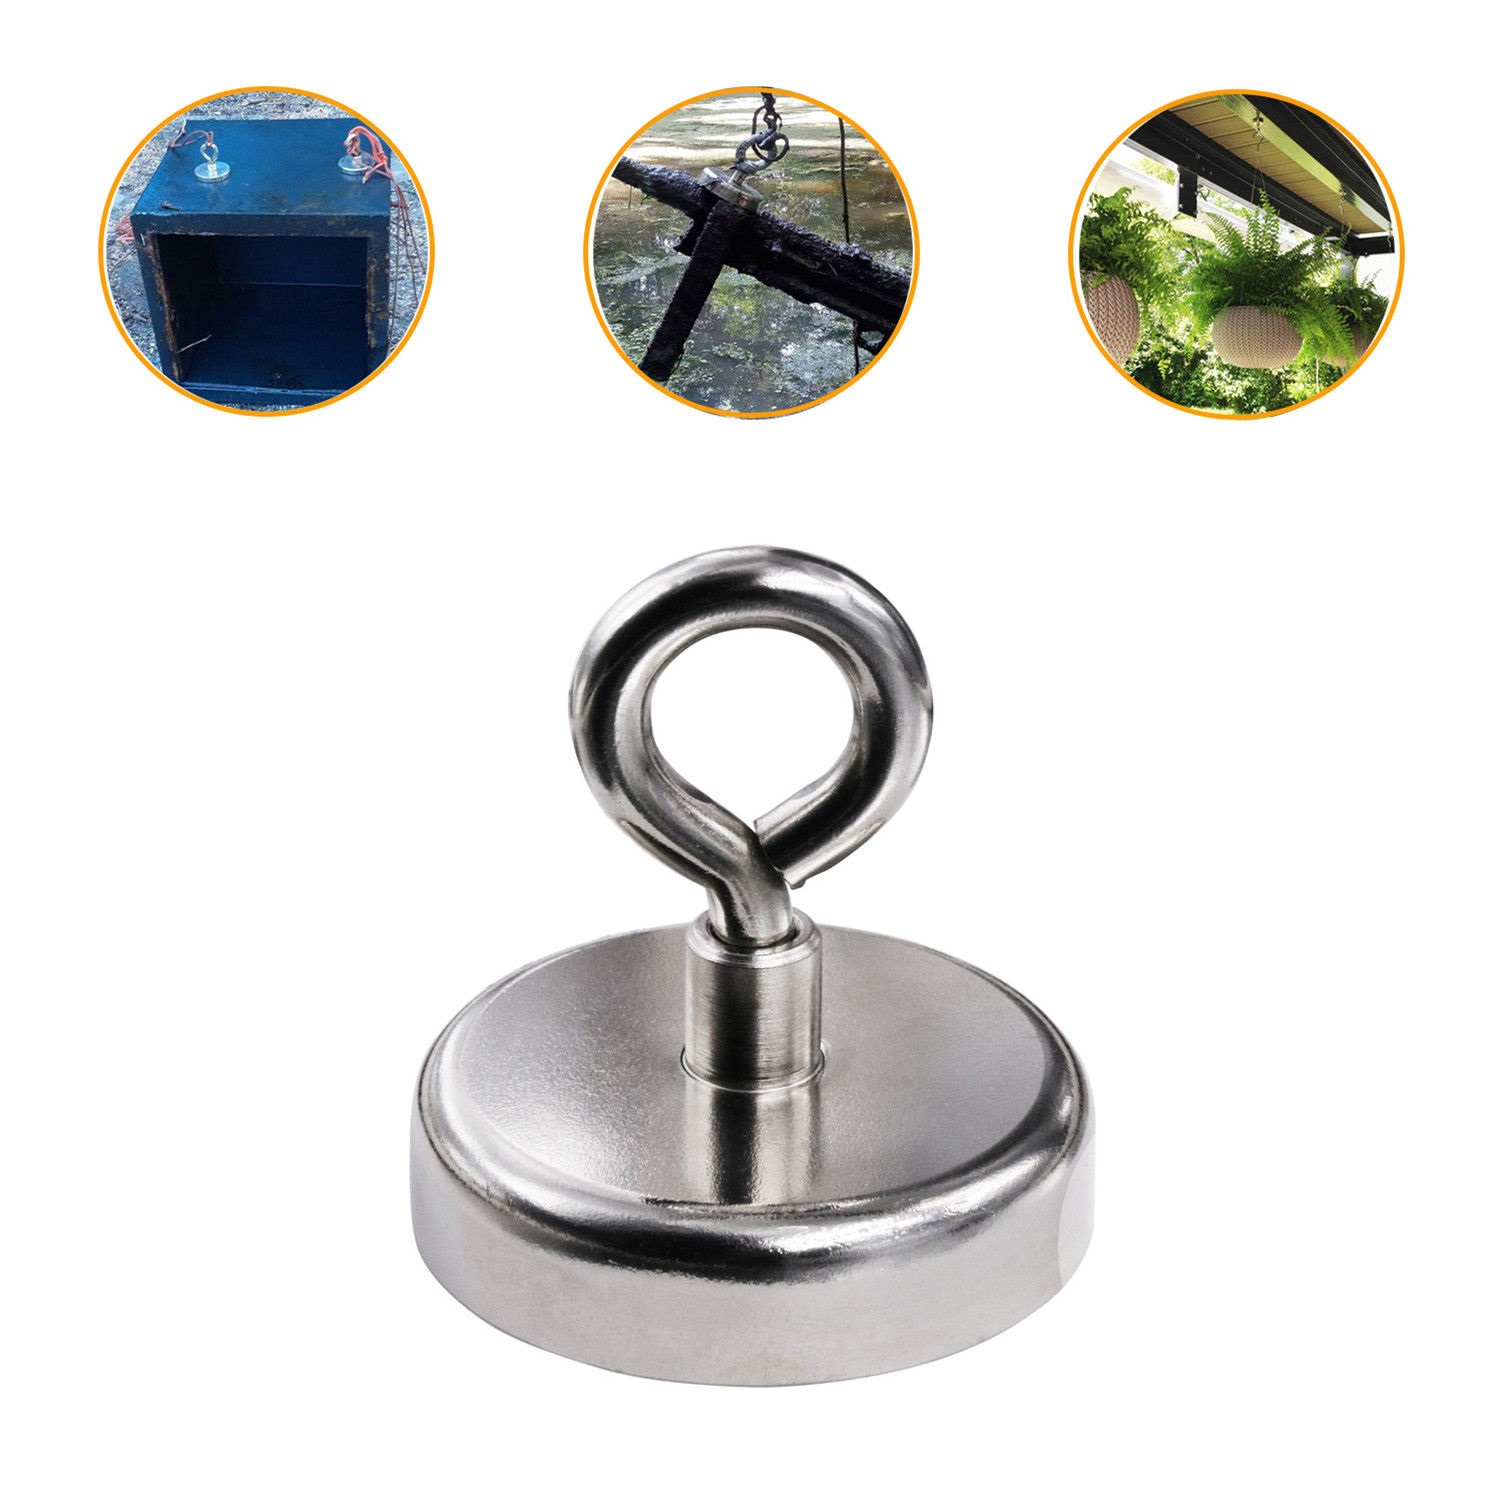 Fishing Magnet Super Strong Neodymium Round Thick Eyebolt Treasure Hunt 1200Kg